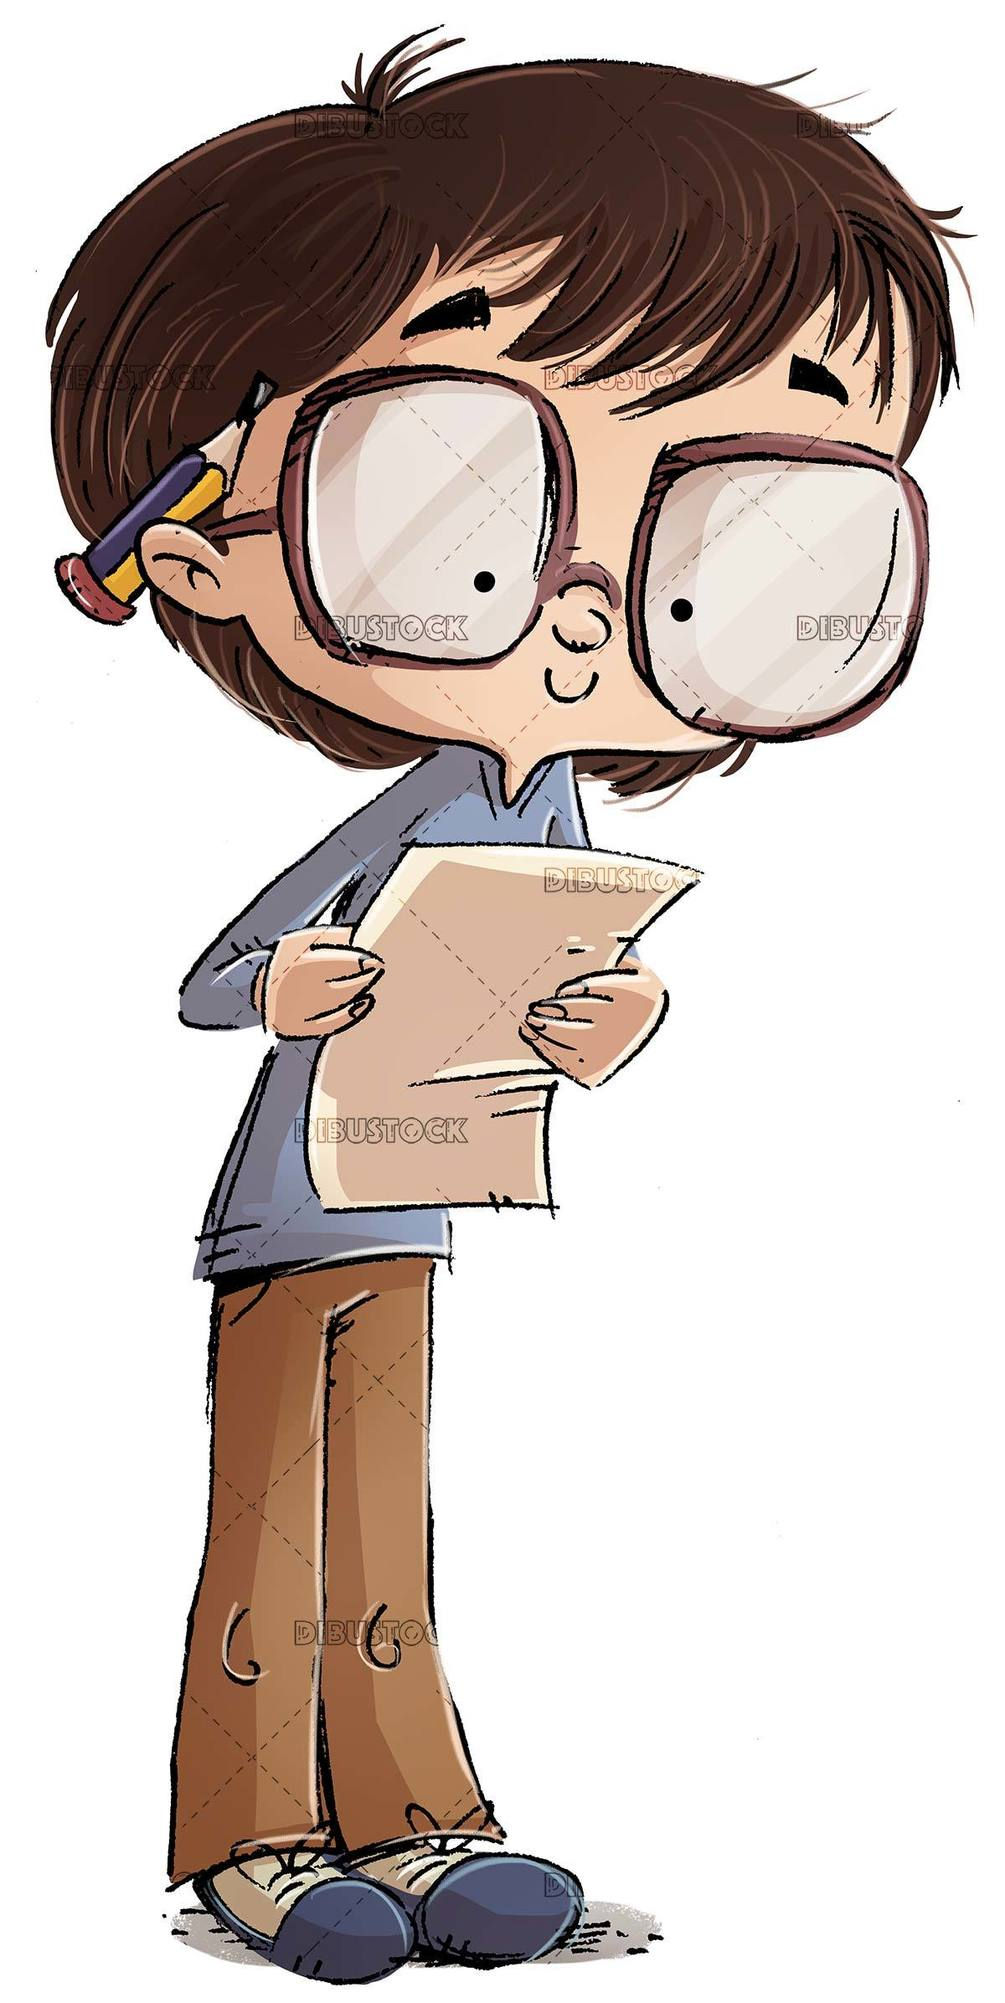 student boy with glasses looking at a paper